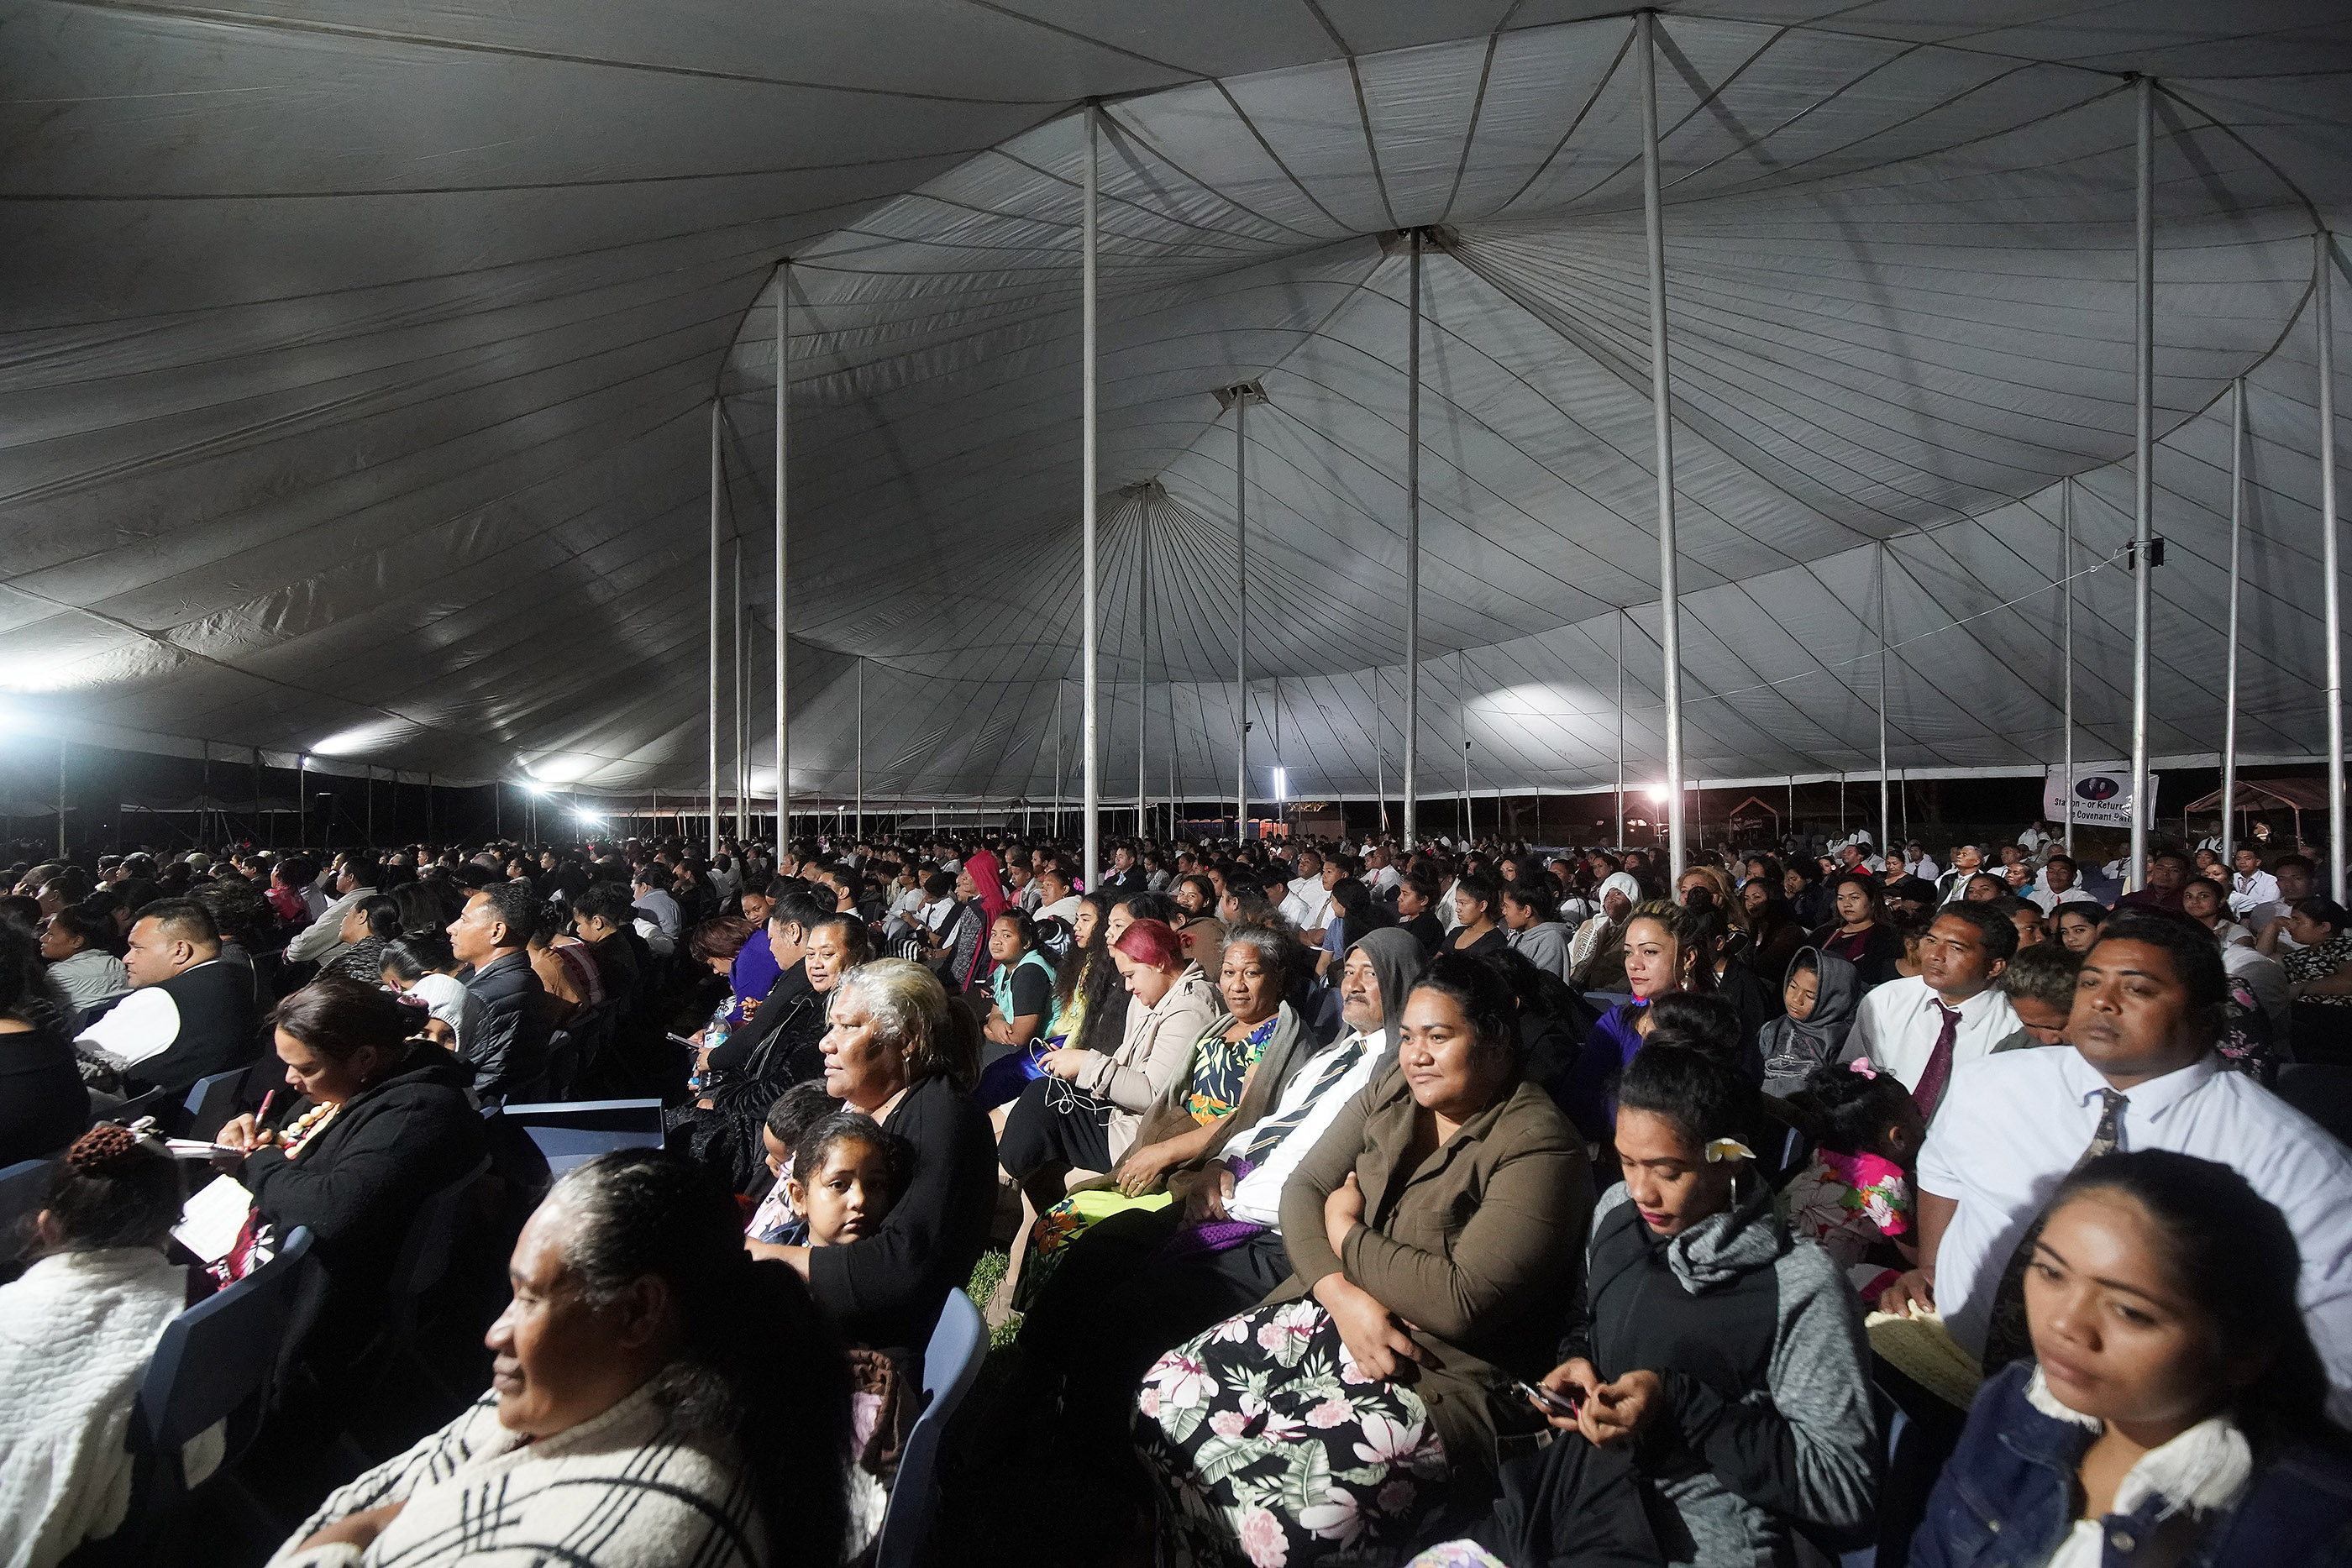 Attendees avoid the rain under a tent during a devotional in Nuku'alofa, Tonga, on May 23, 2019.